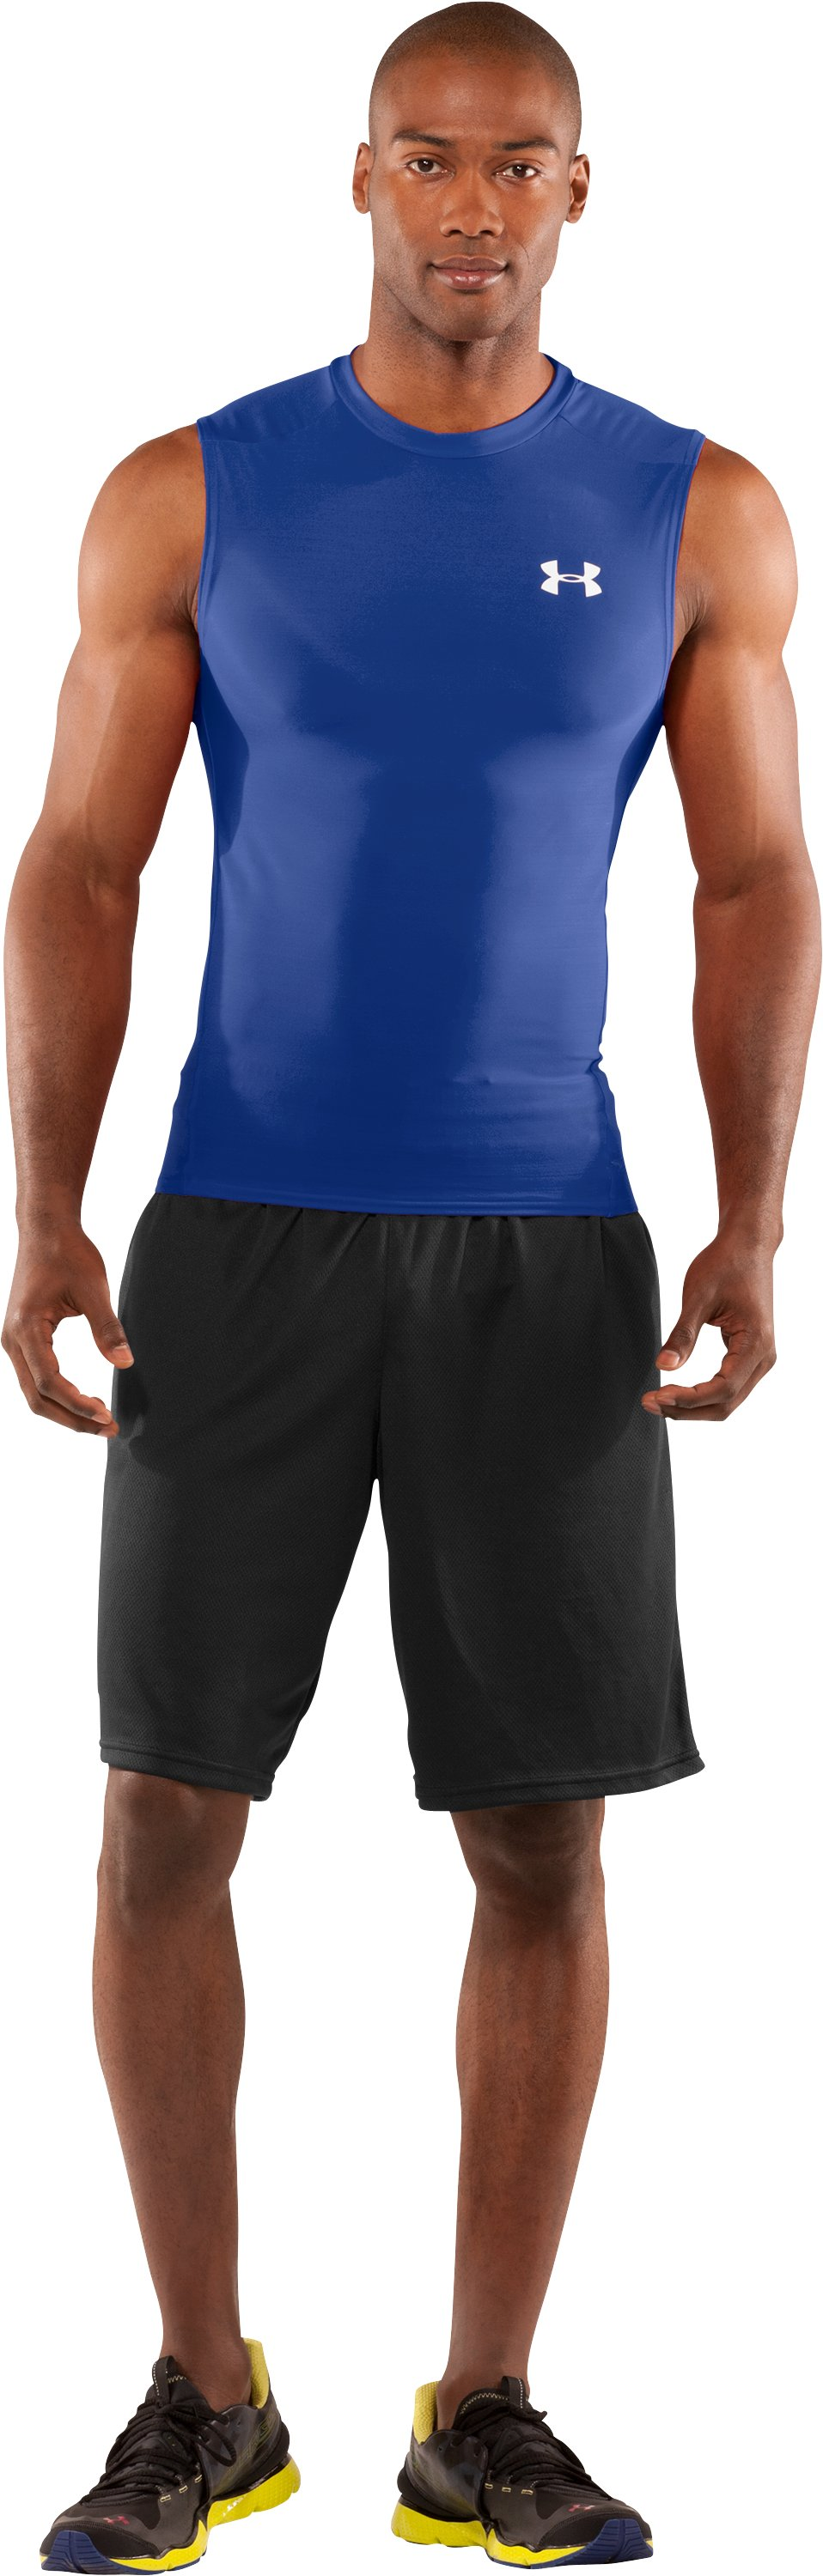 Men's HeatGear® Compression Sleeveless T-Shirt, Royal